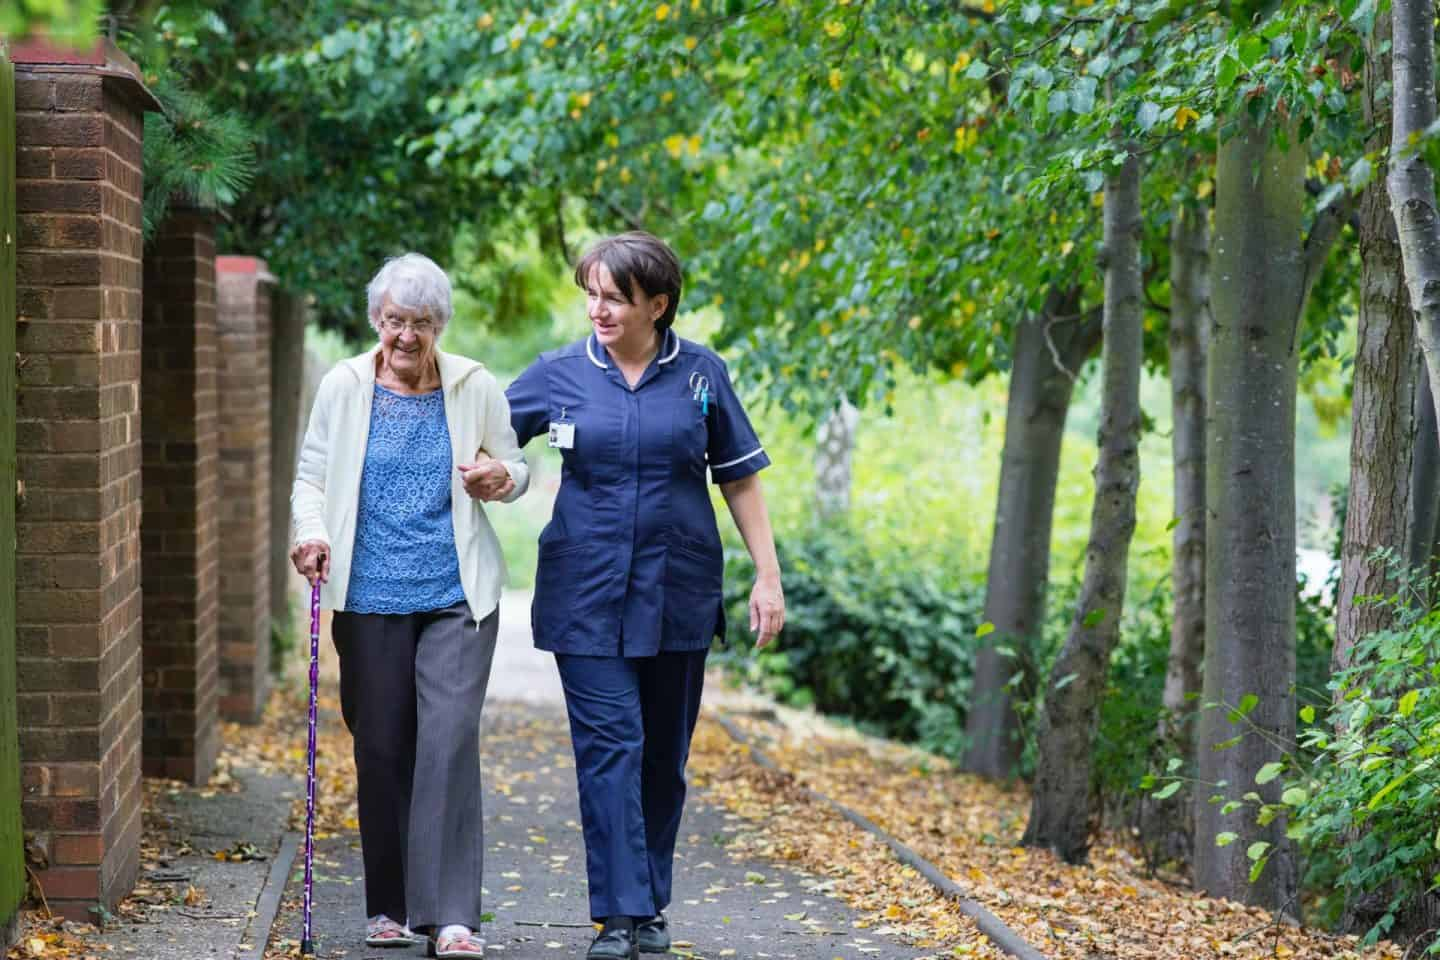 How to Find the Right Care Home for You or Your Loved One